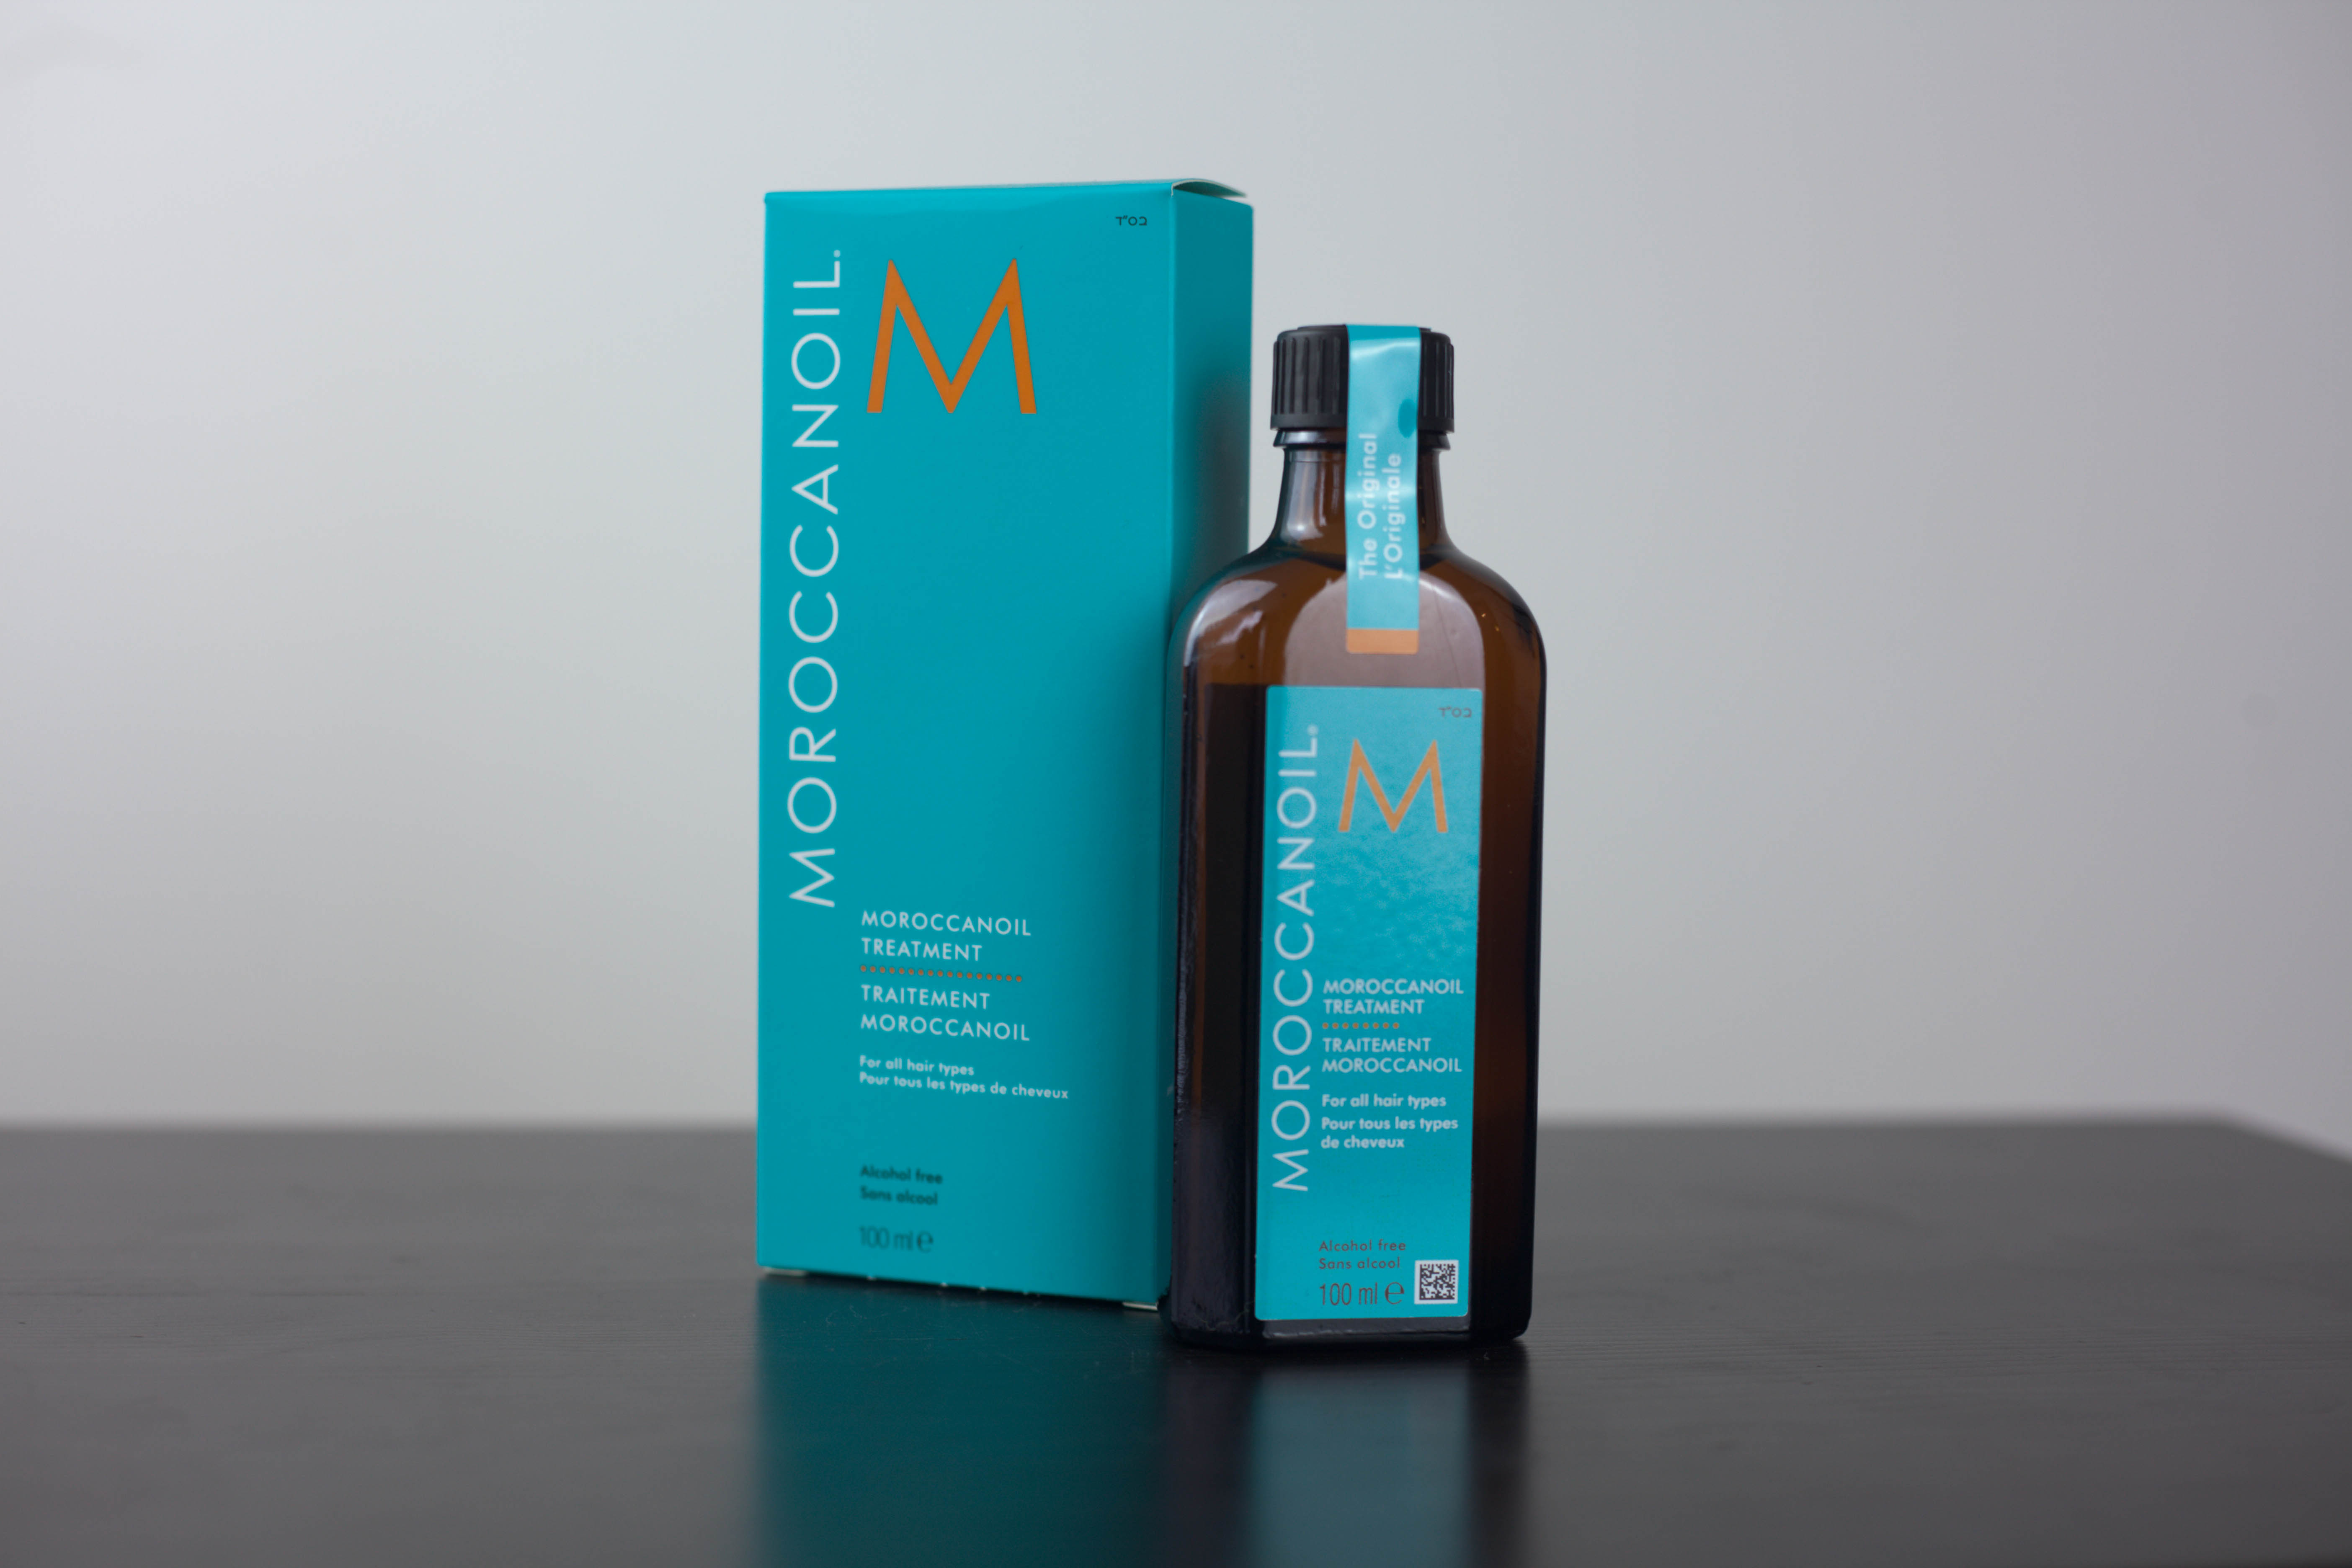 Moroccanoil Product Feature